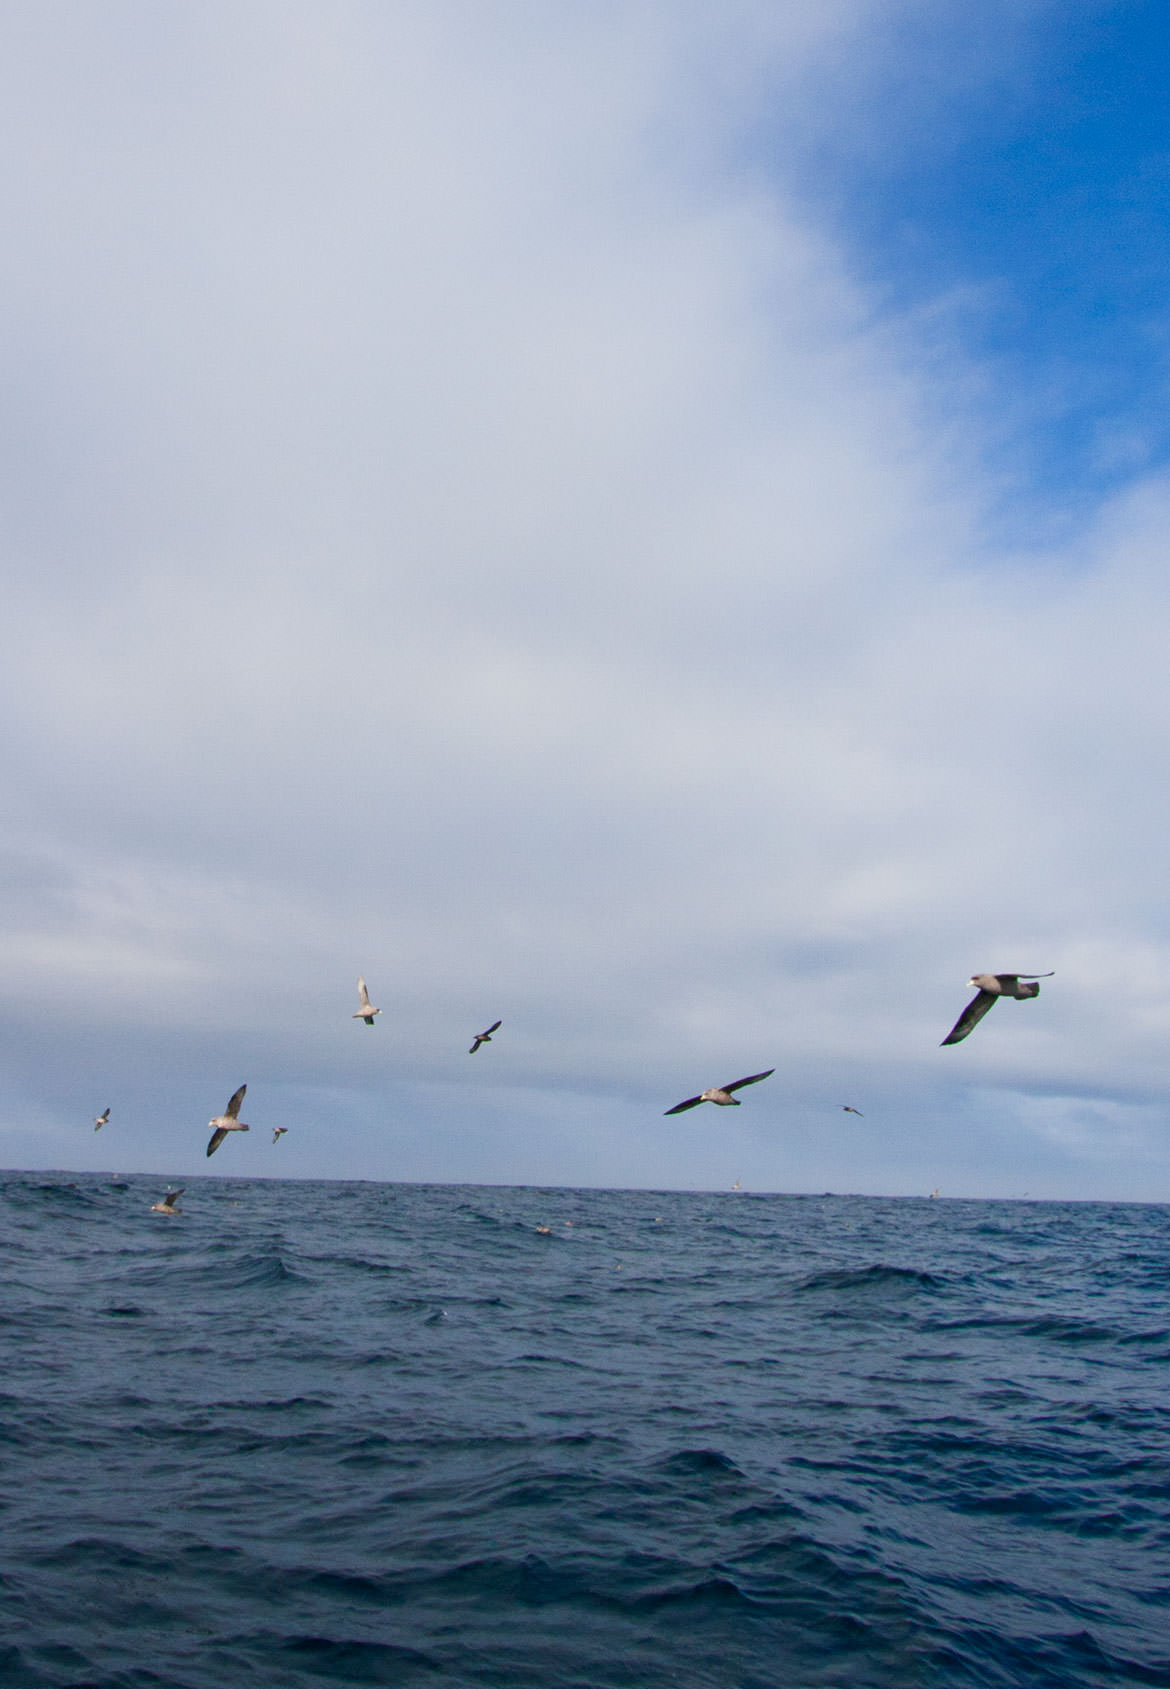 Pelagic Birding off the Oregon Coast